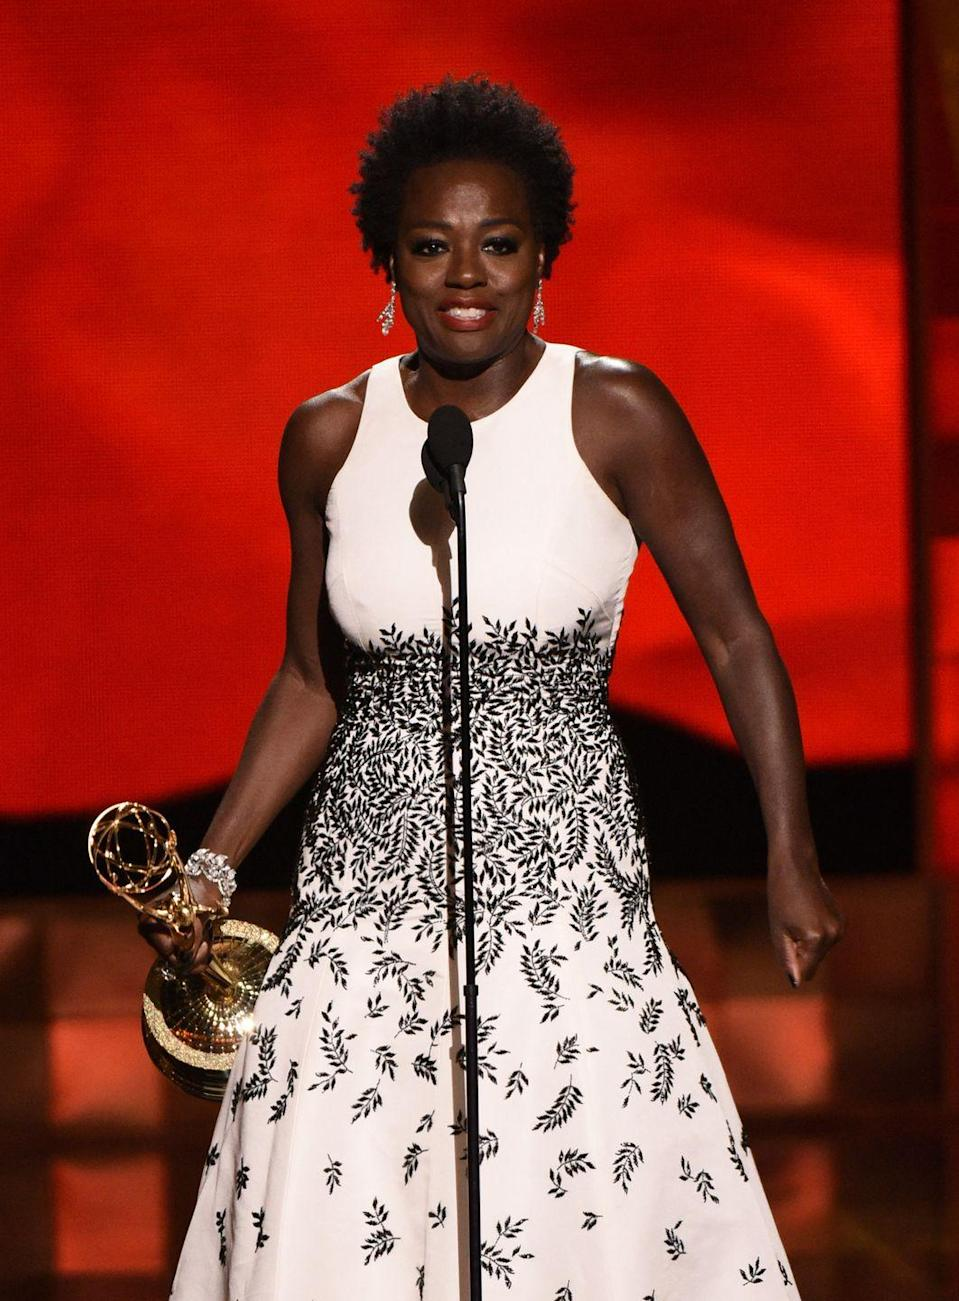 <p>It's crazy to think that it took until 2015 for a woman of color to win an Emmy for Best Actress in a Drama, but it did. That year, Viola Davis won and made a beautiful speech where she quoted Harriet Tubman, spoke up about the lack of roles for women of color, and made everyone cry. </p>